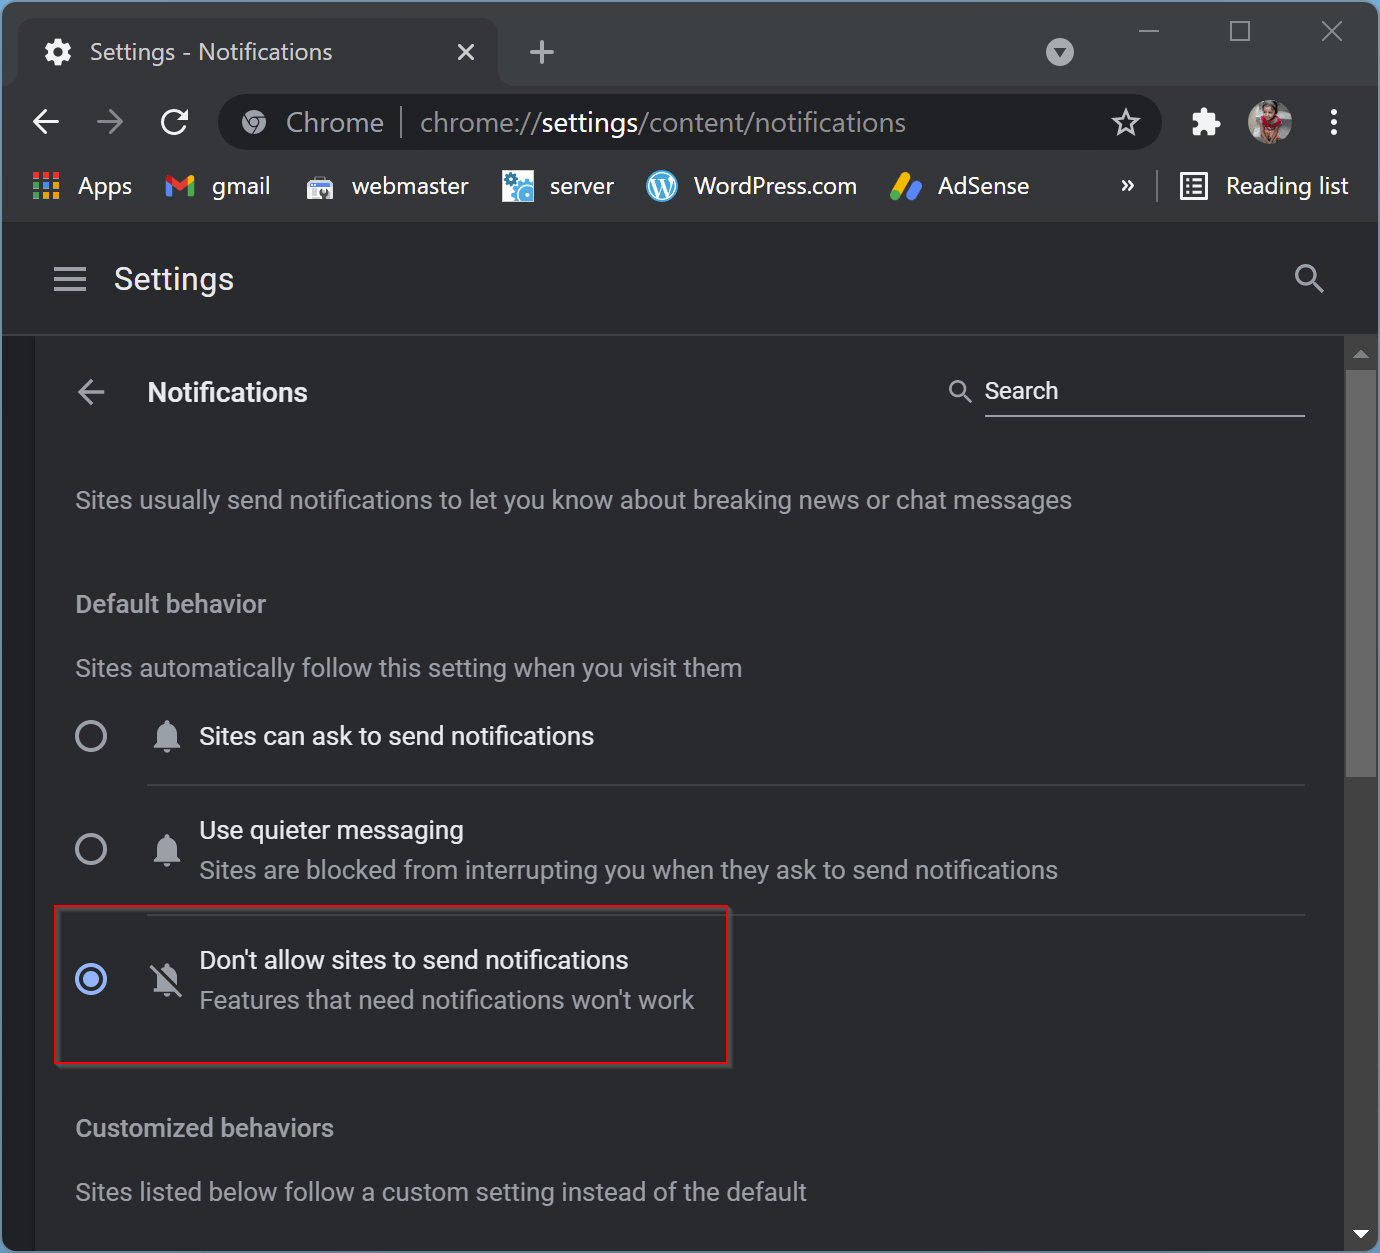 How to Turn Off Google Chrome Notifications on Windows 11/10?